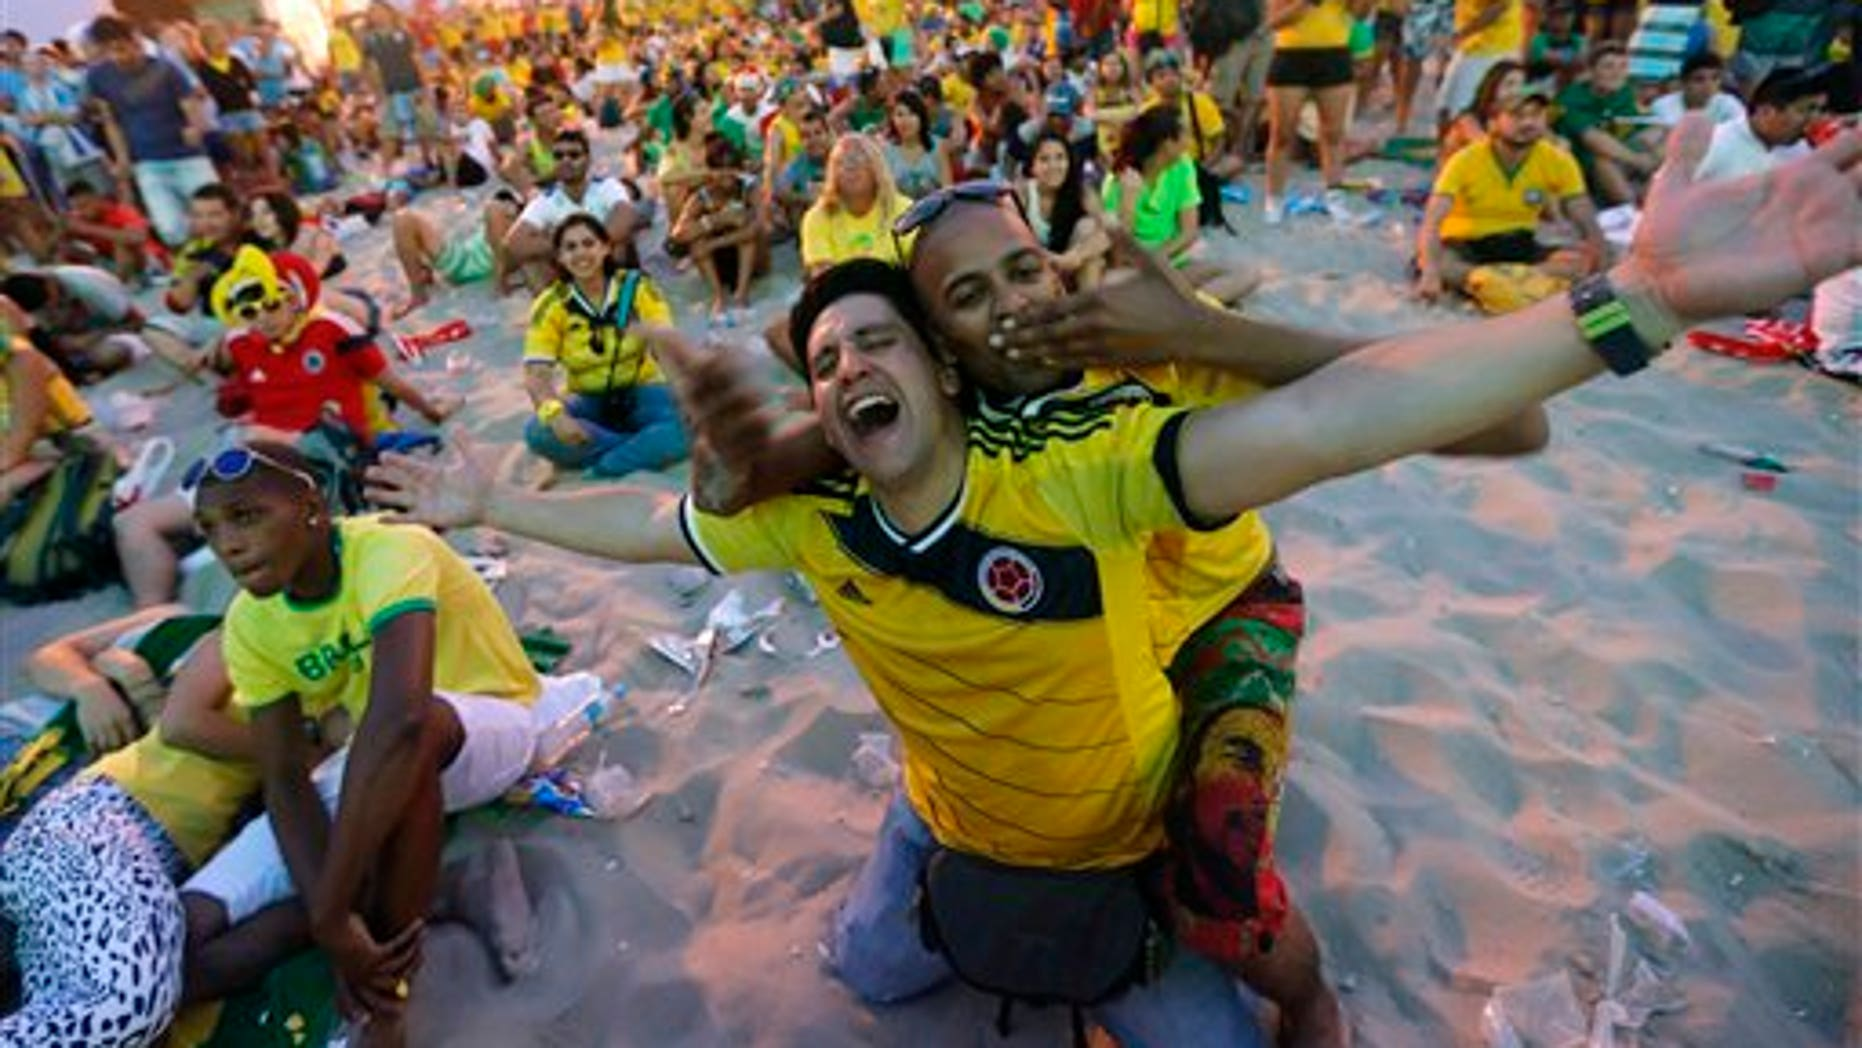 FILE - In this June 28, 2014, file photo, Colombia soccer fans celebrate a goal against Uruguay as they watch the World Cup round of 16 match inside the FIFA Fan Fest area on Copacabana beach in Rio de Janeiro, Brazil.